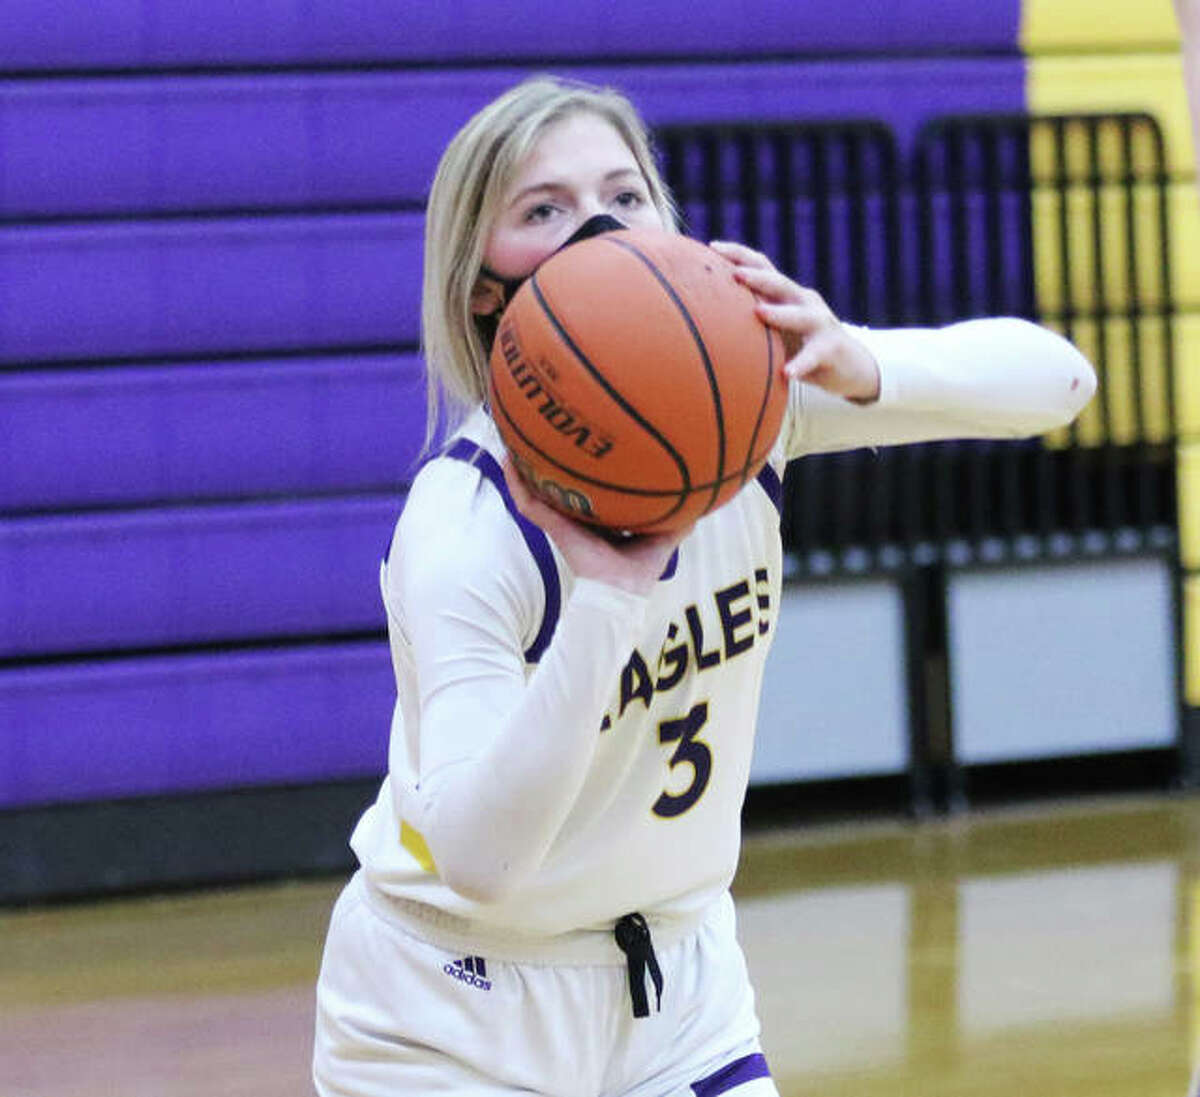 CM's Kelbie Zupan scored a career-high 20 points, including three 3-pointers, in the Eagles' MVC girls basketball victory Saturday in Waterloo.